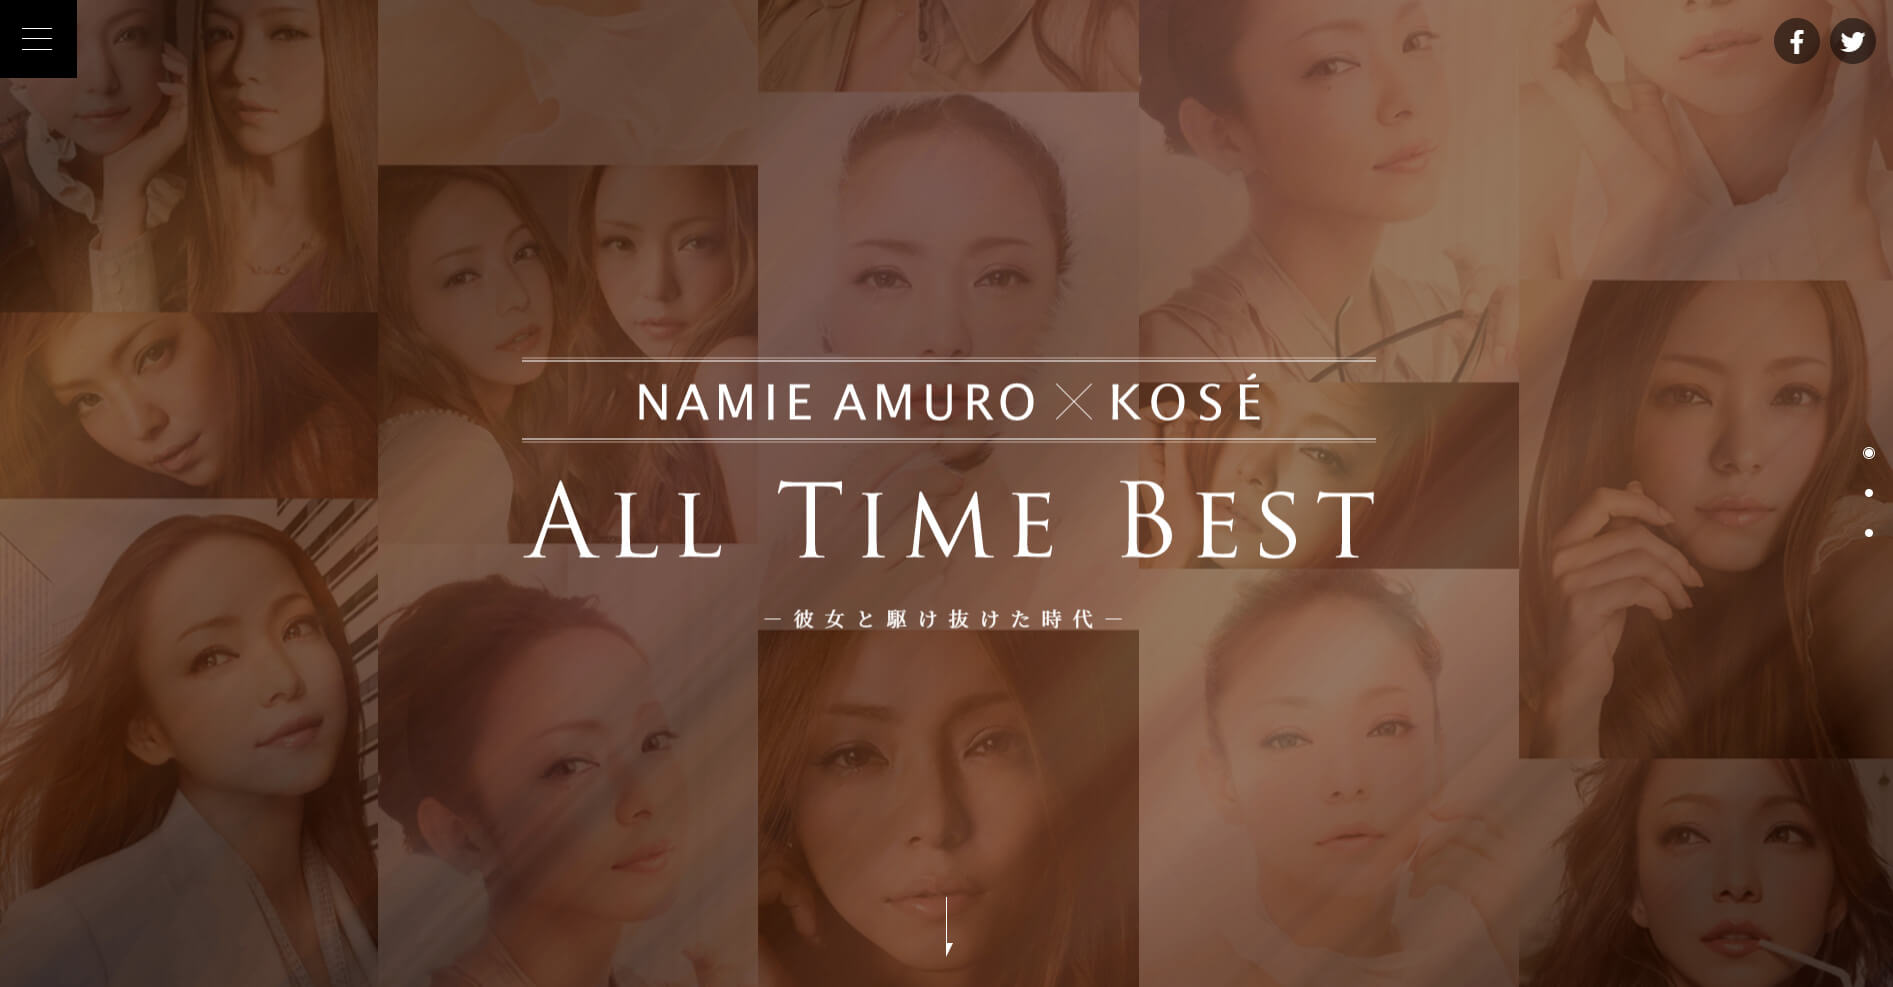 namie-amuroxkose-all-time-best-project%ef%bc%92